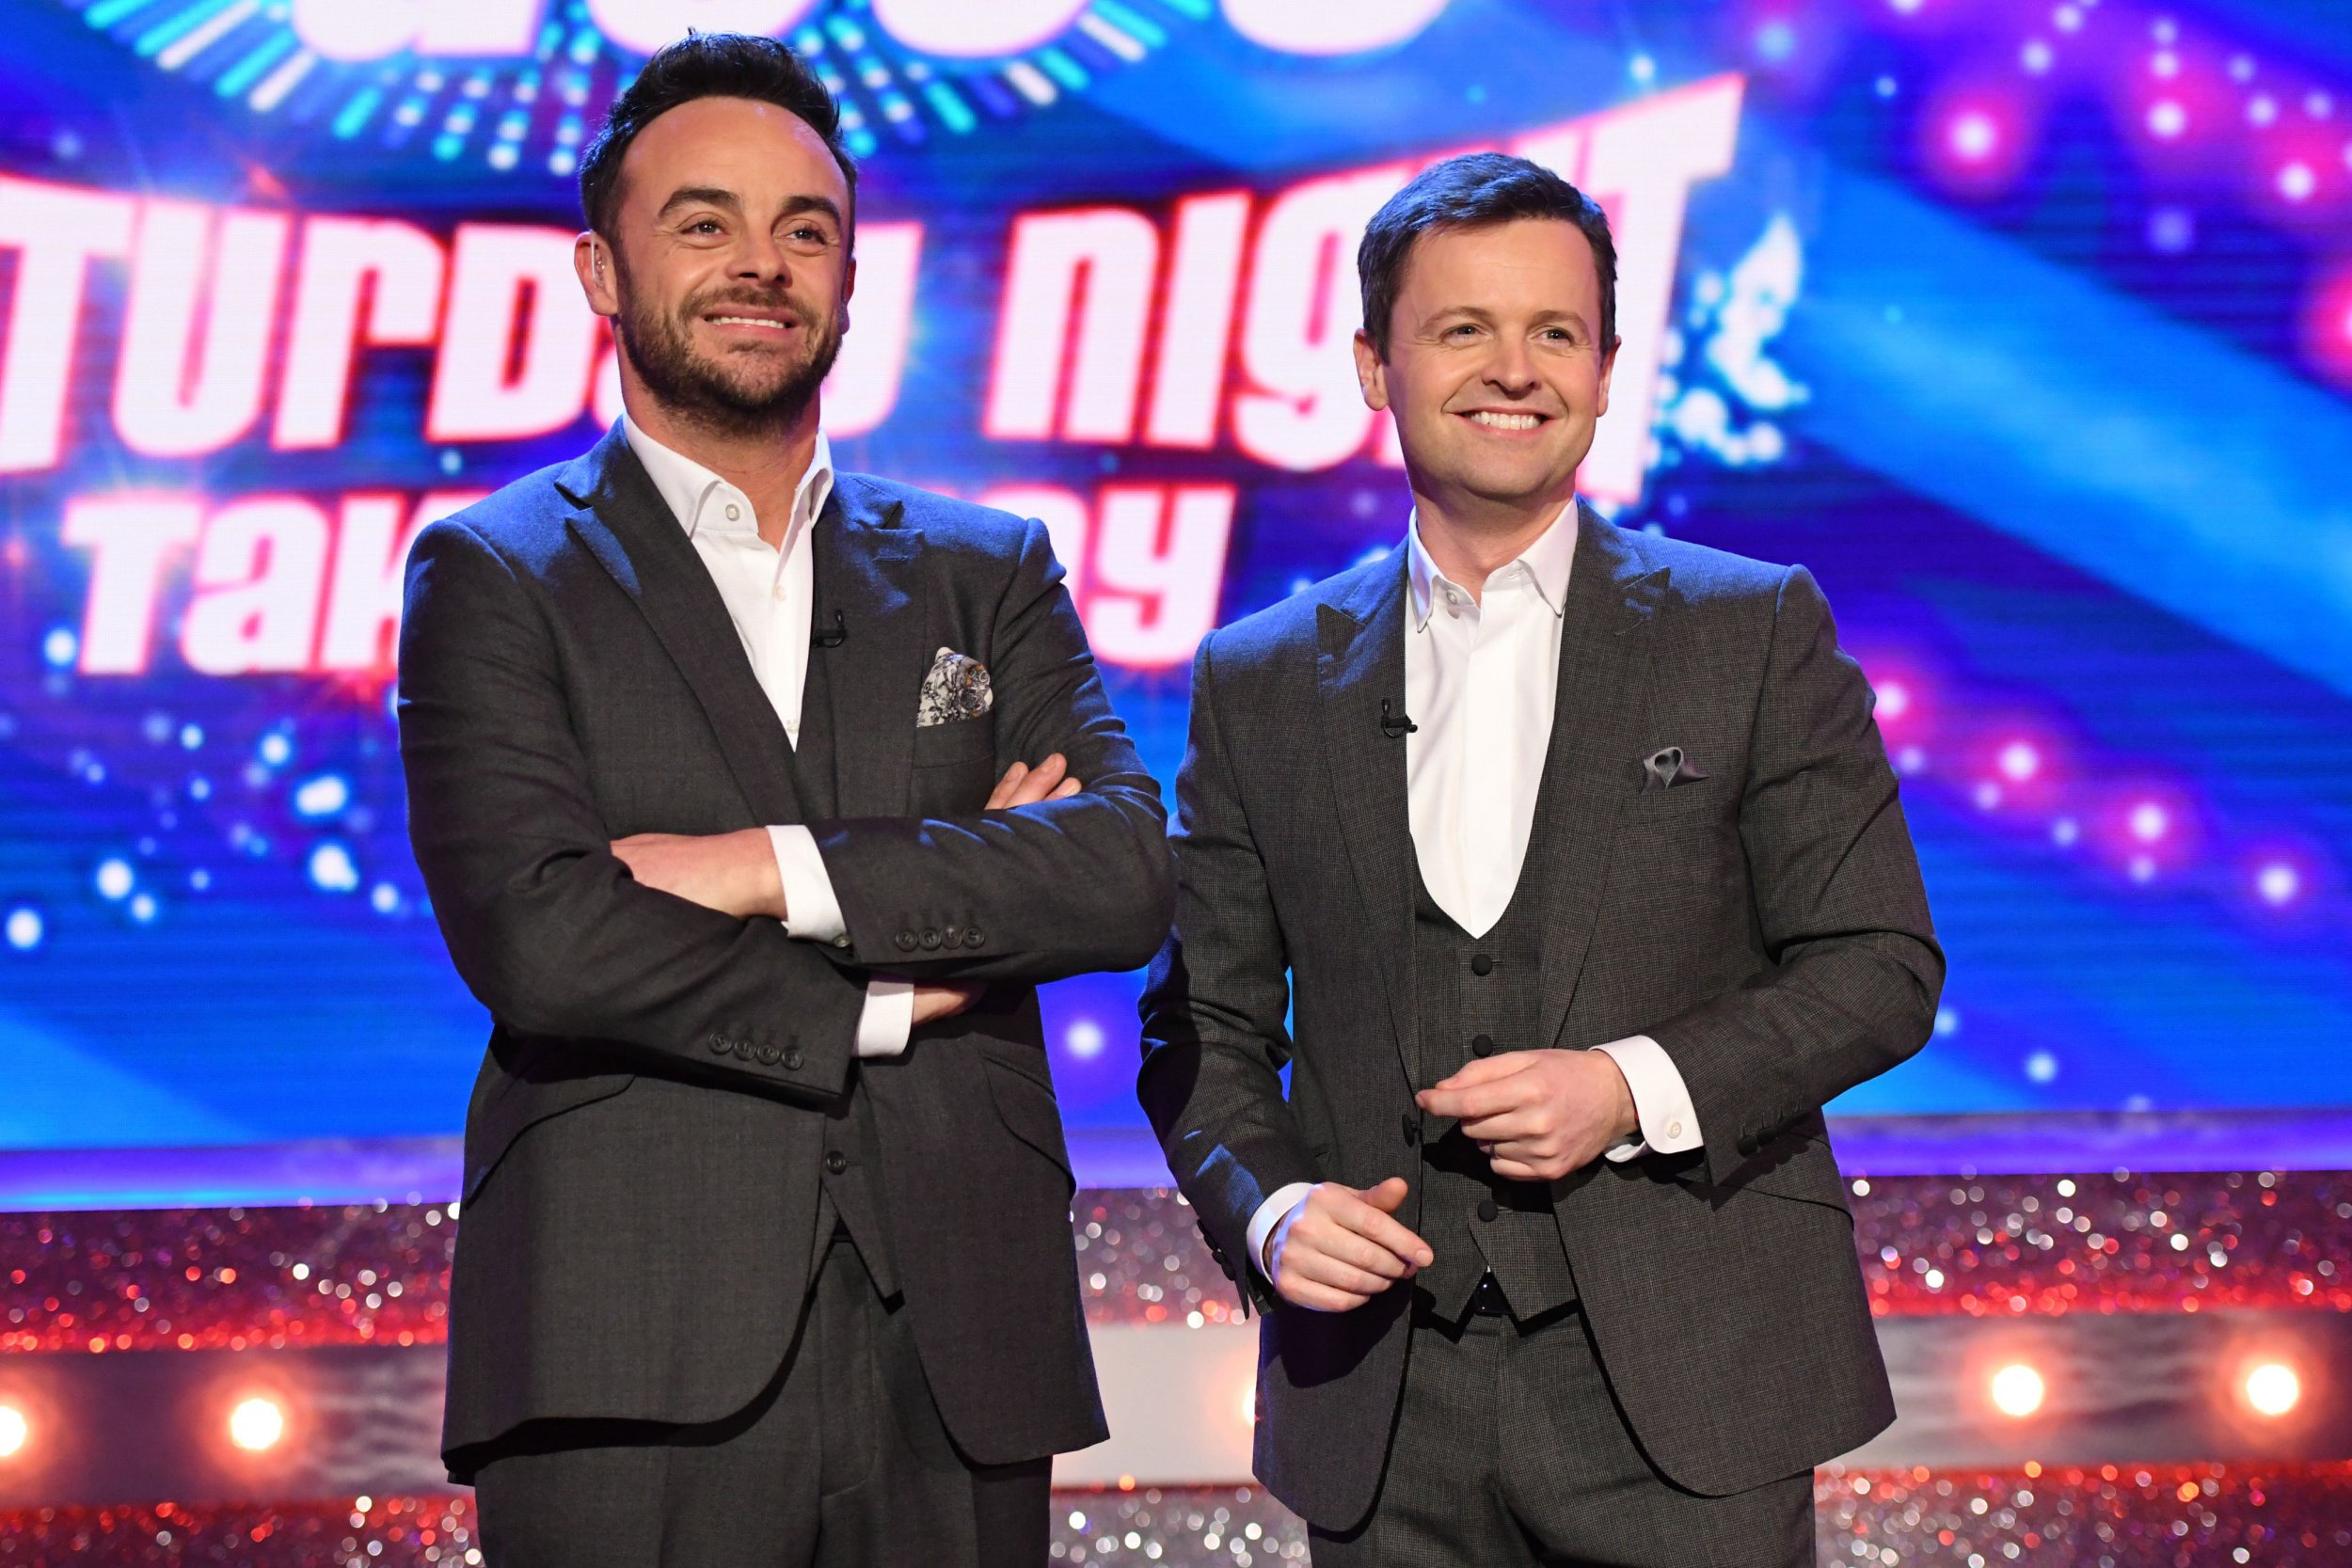 Ant and Dec's Saturday Night Takeaway return confirmed as ITV squash rumours of axe